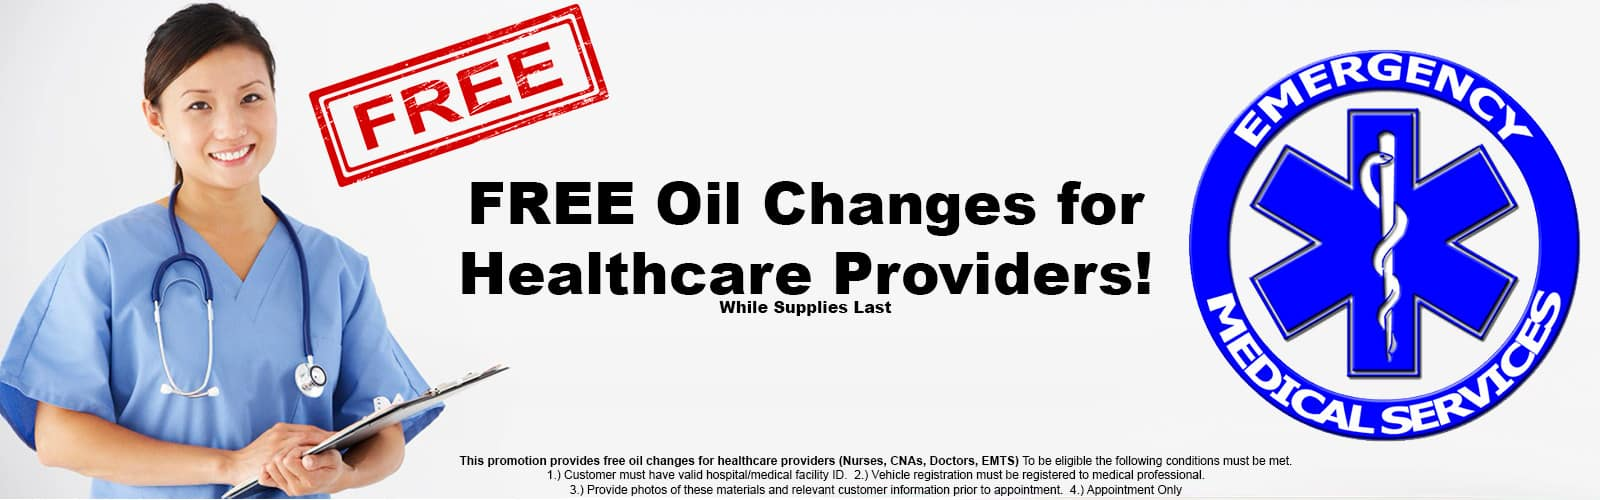 FREE Oil Changes for Healthcare Providers